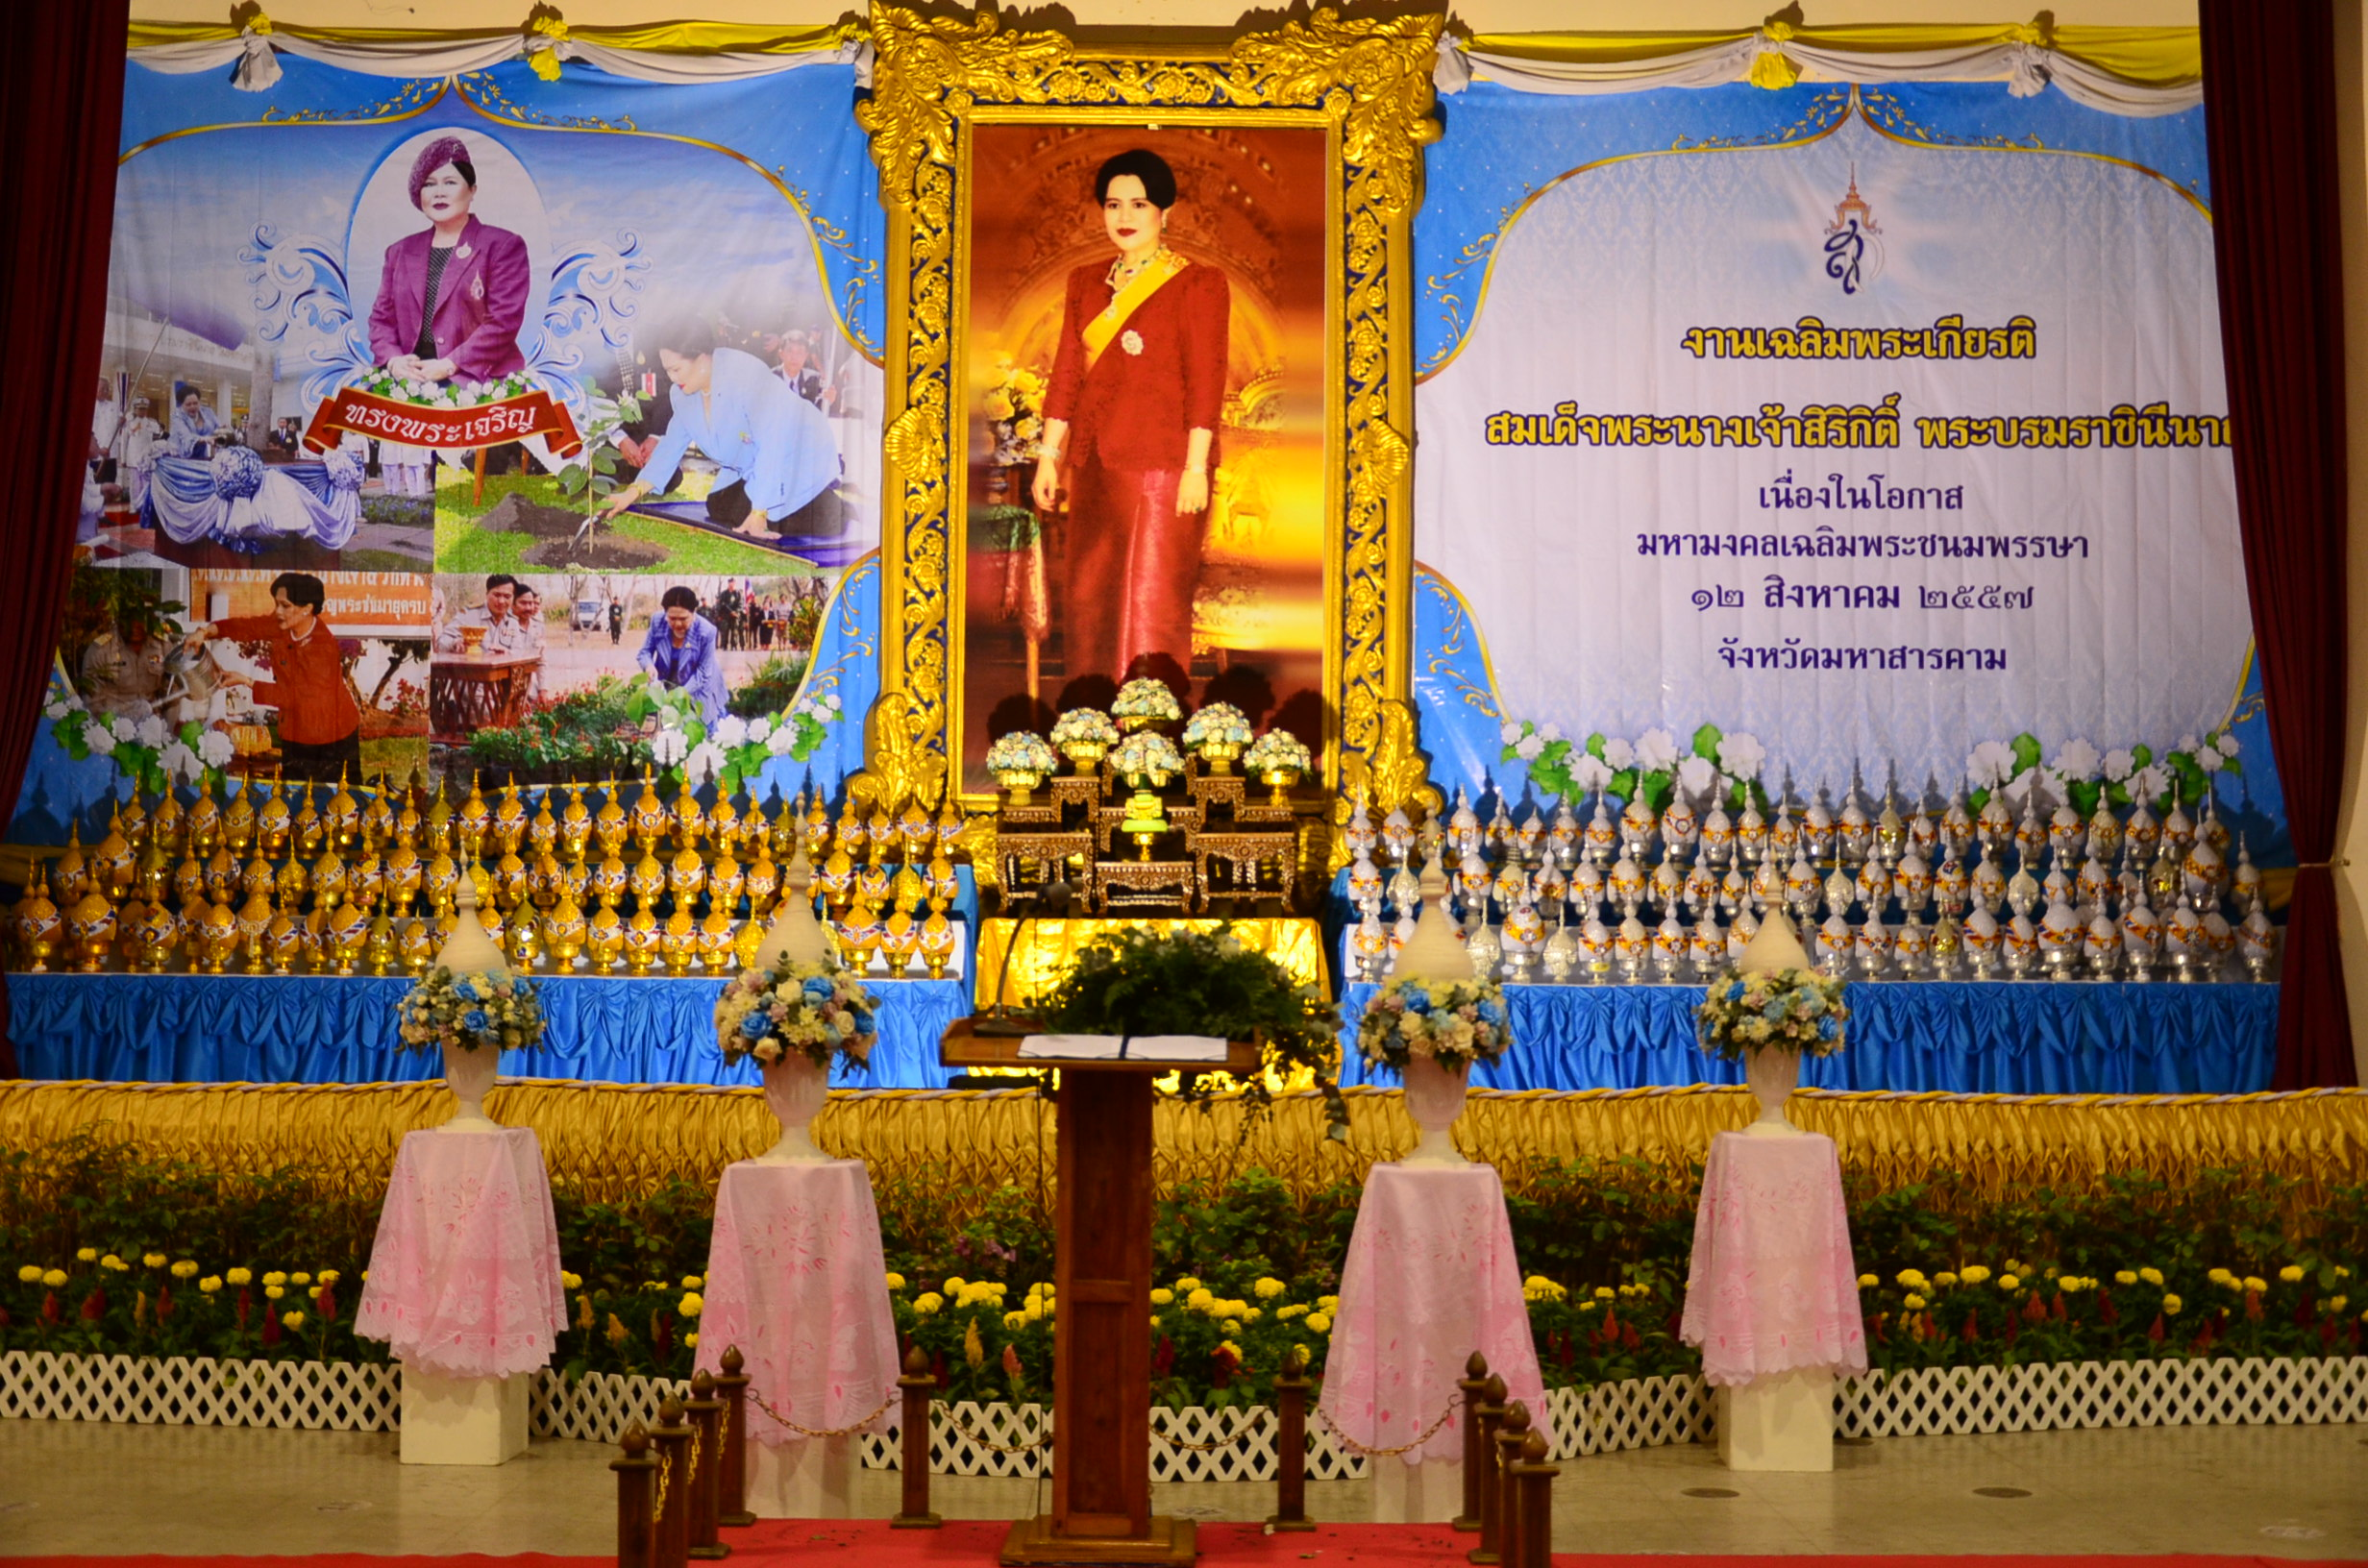 The Birthday Celebration of Her Majesty Queen Sirikit